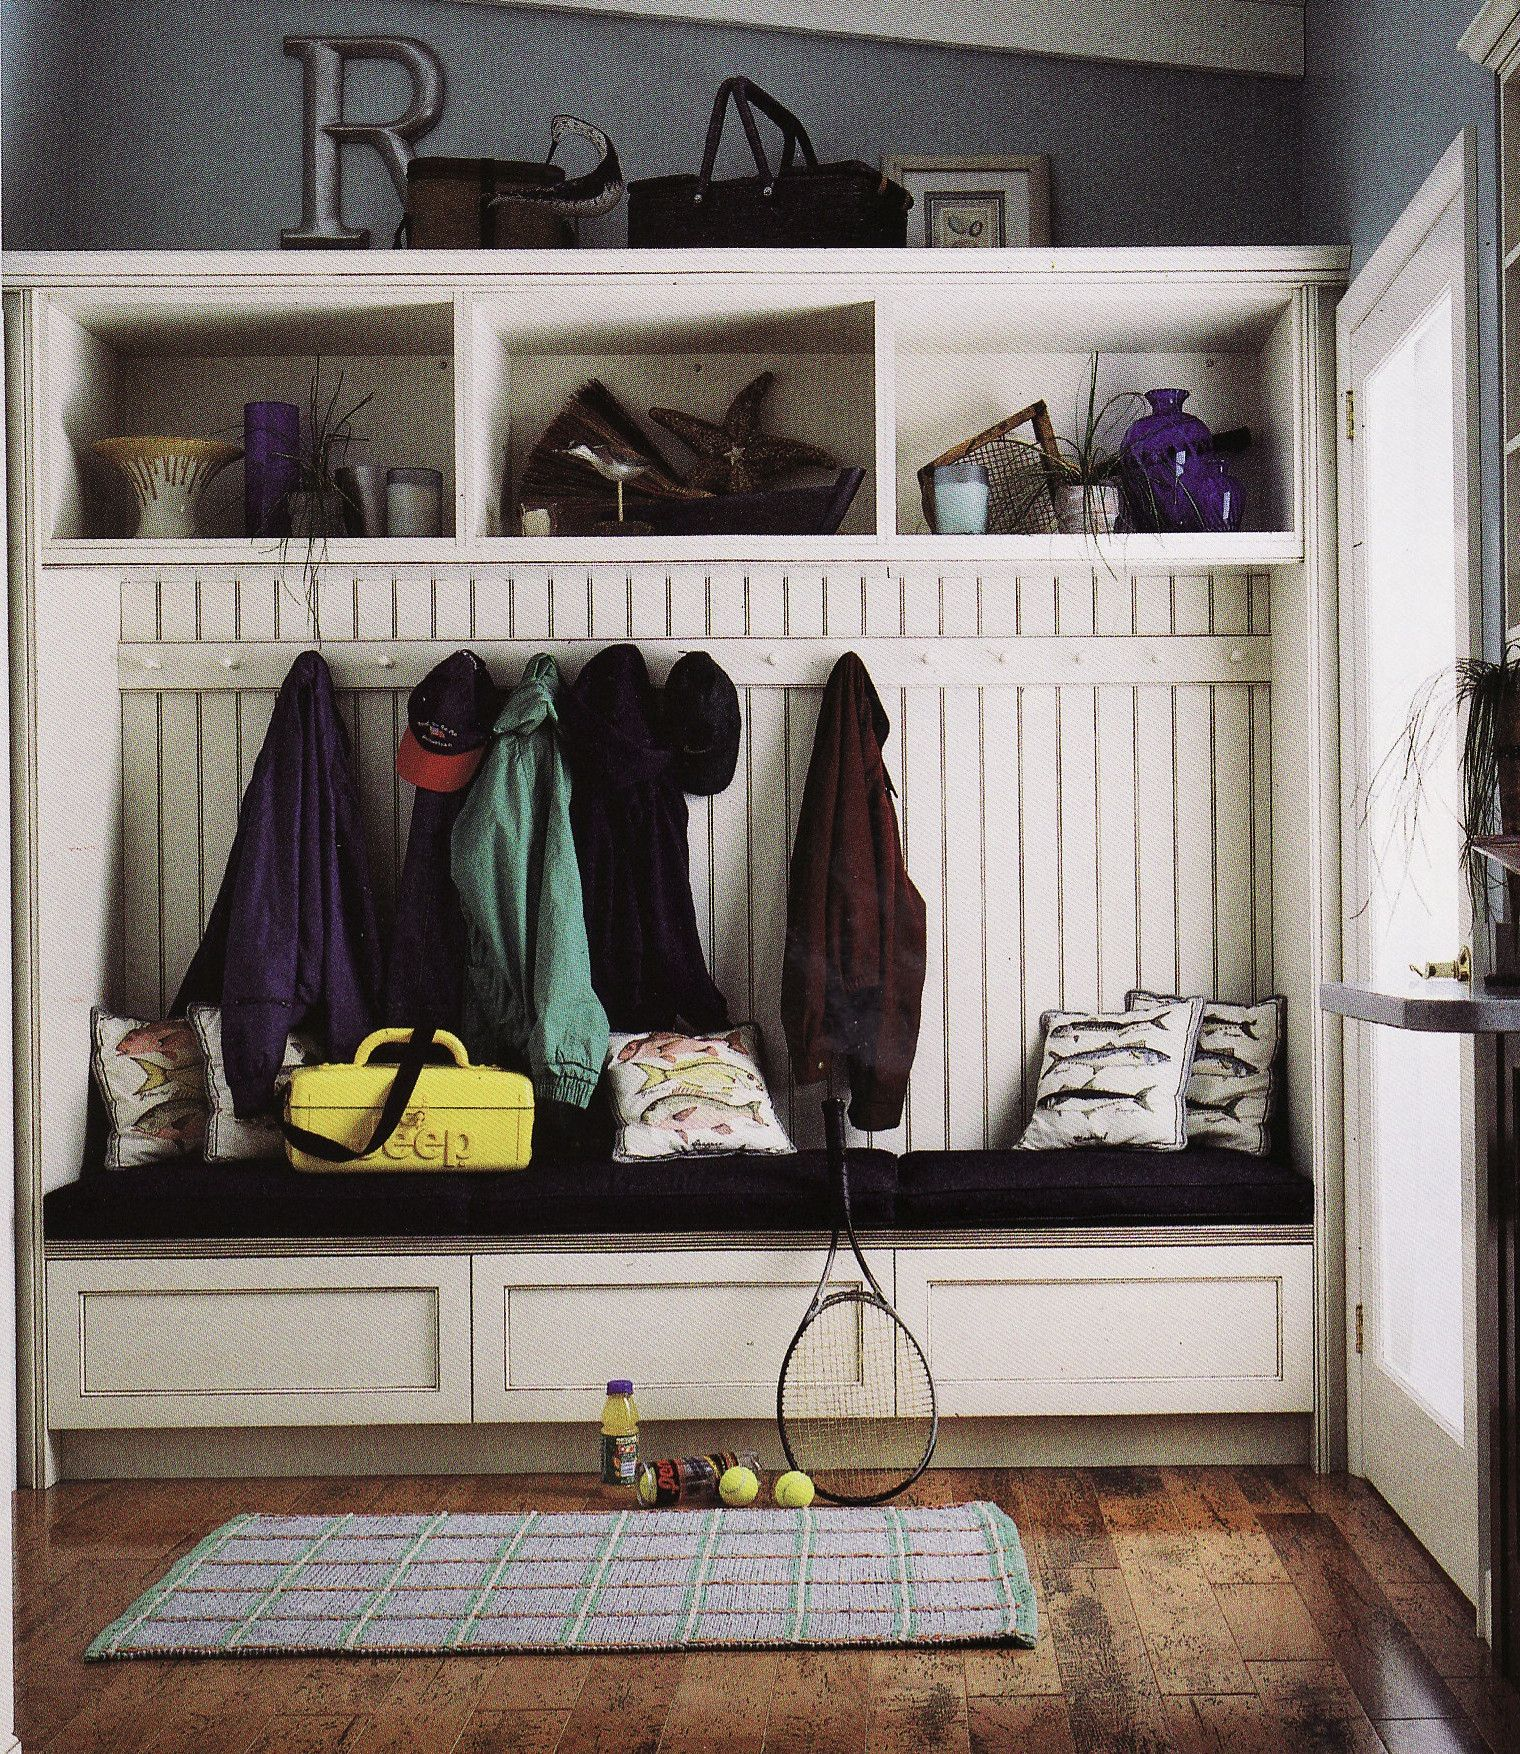 New Design Mudrooms For Ideas Decoration Your Home Entrancing Garage  Mudroom Designs For Nice Decorations Your Home